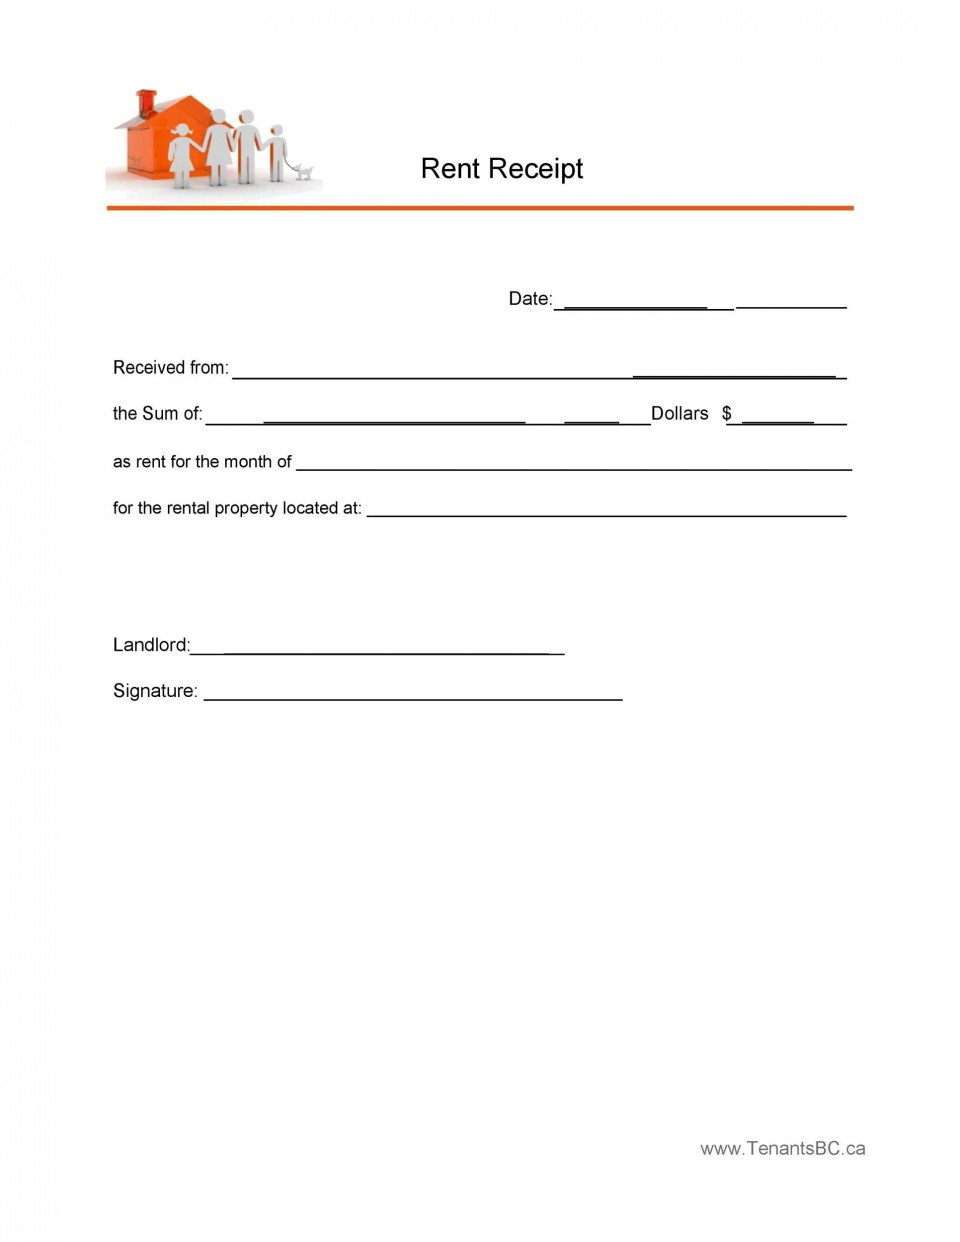 008 Surprising House Rent Receipt Sample Doc Highest Clarity  Template Word Document Free Download Format For Income Tax960